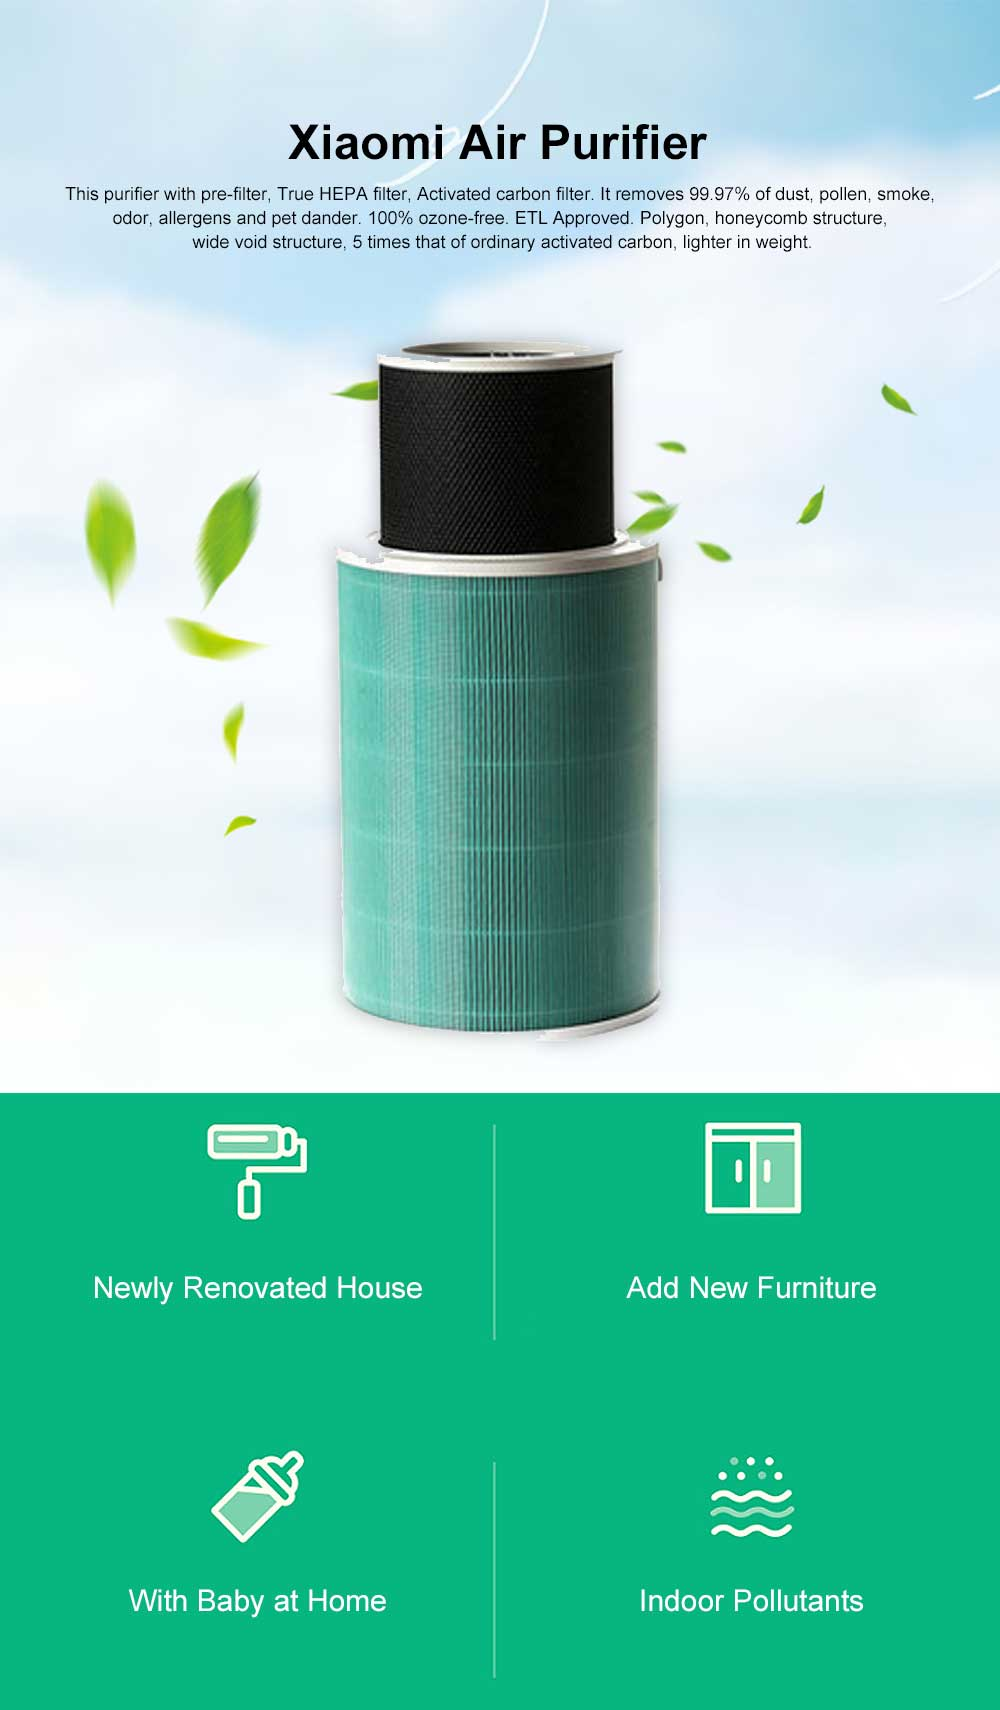 Xiaomi Air Purifier, 3 Stage Filtration Desktop Air Cleaner with Compact Design, Super Quiet for Home Office Air Purifier 0